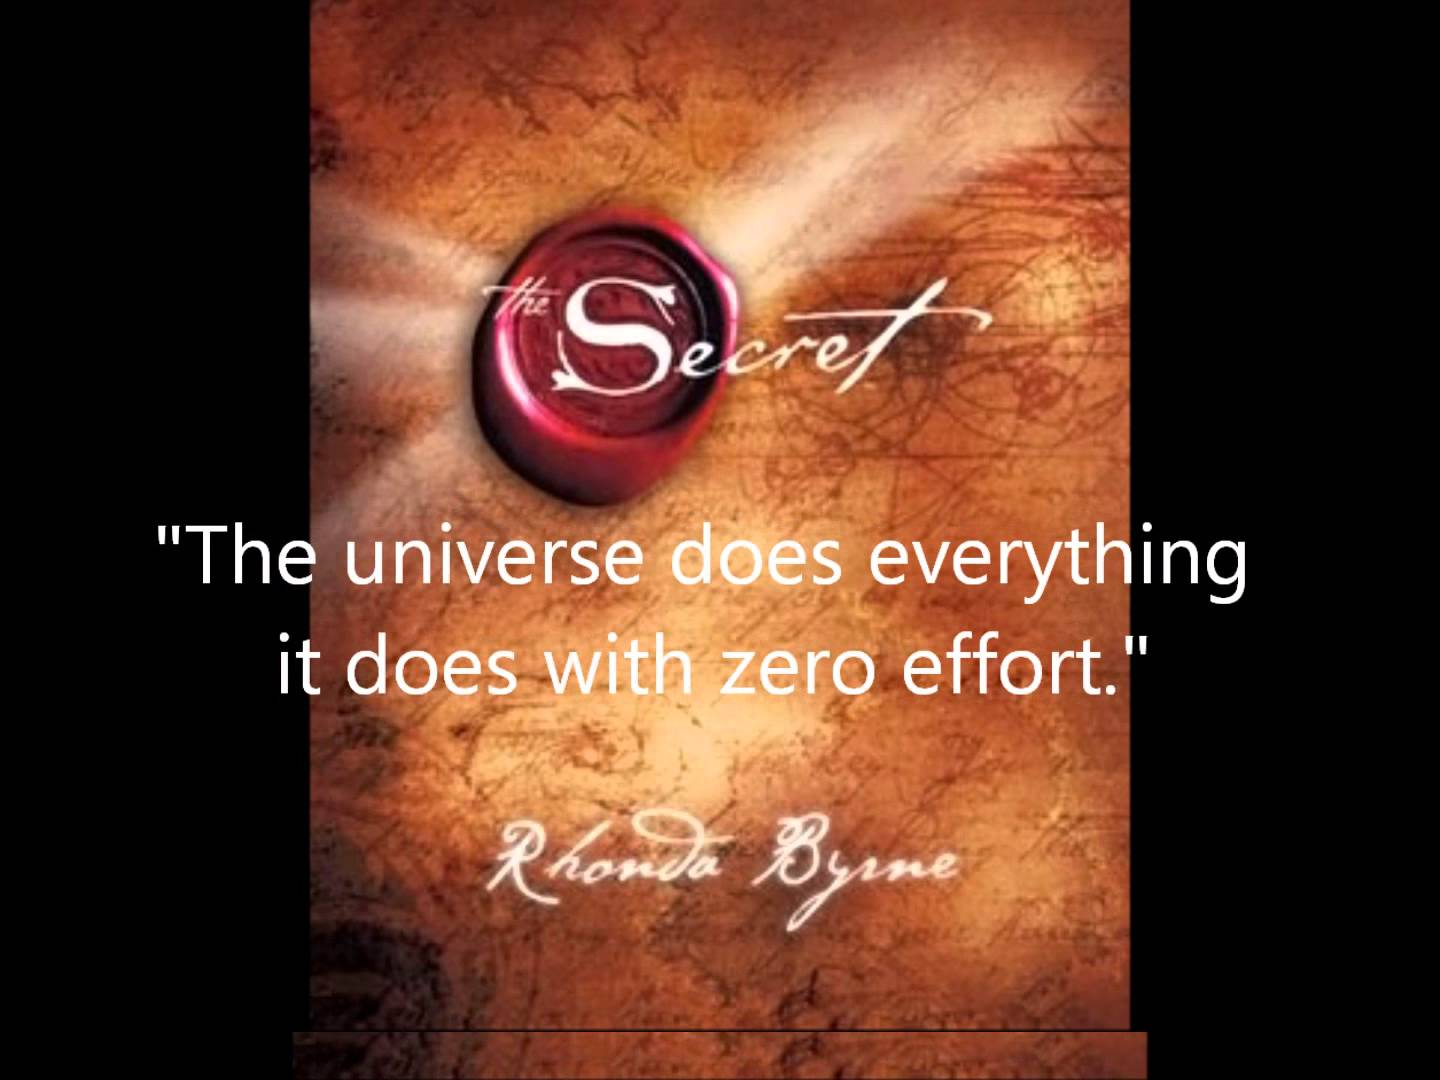 10 Secret Quotes Rhonda Byrne Quirkybyte